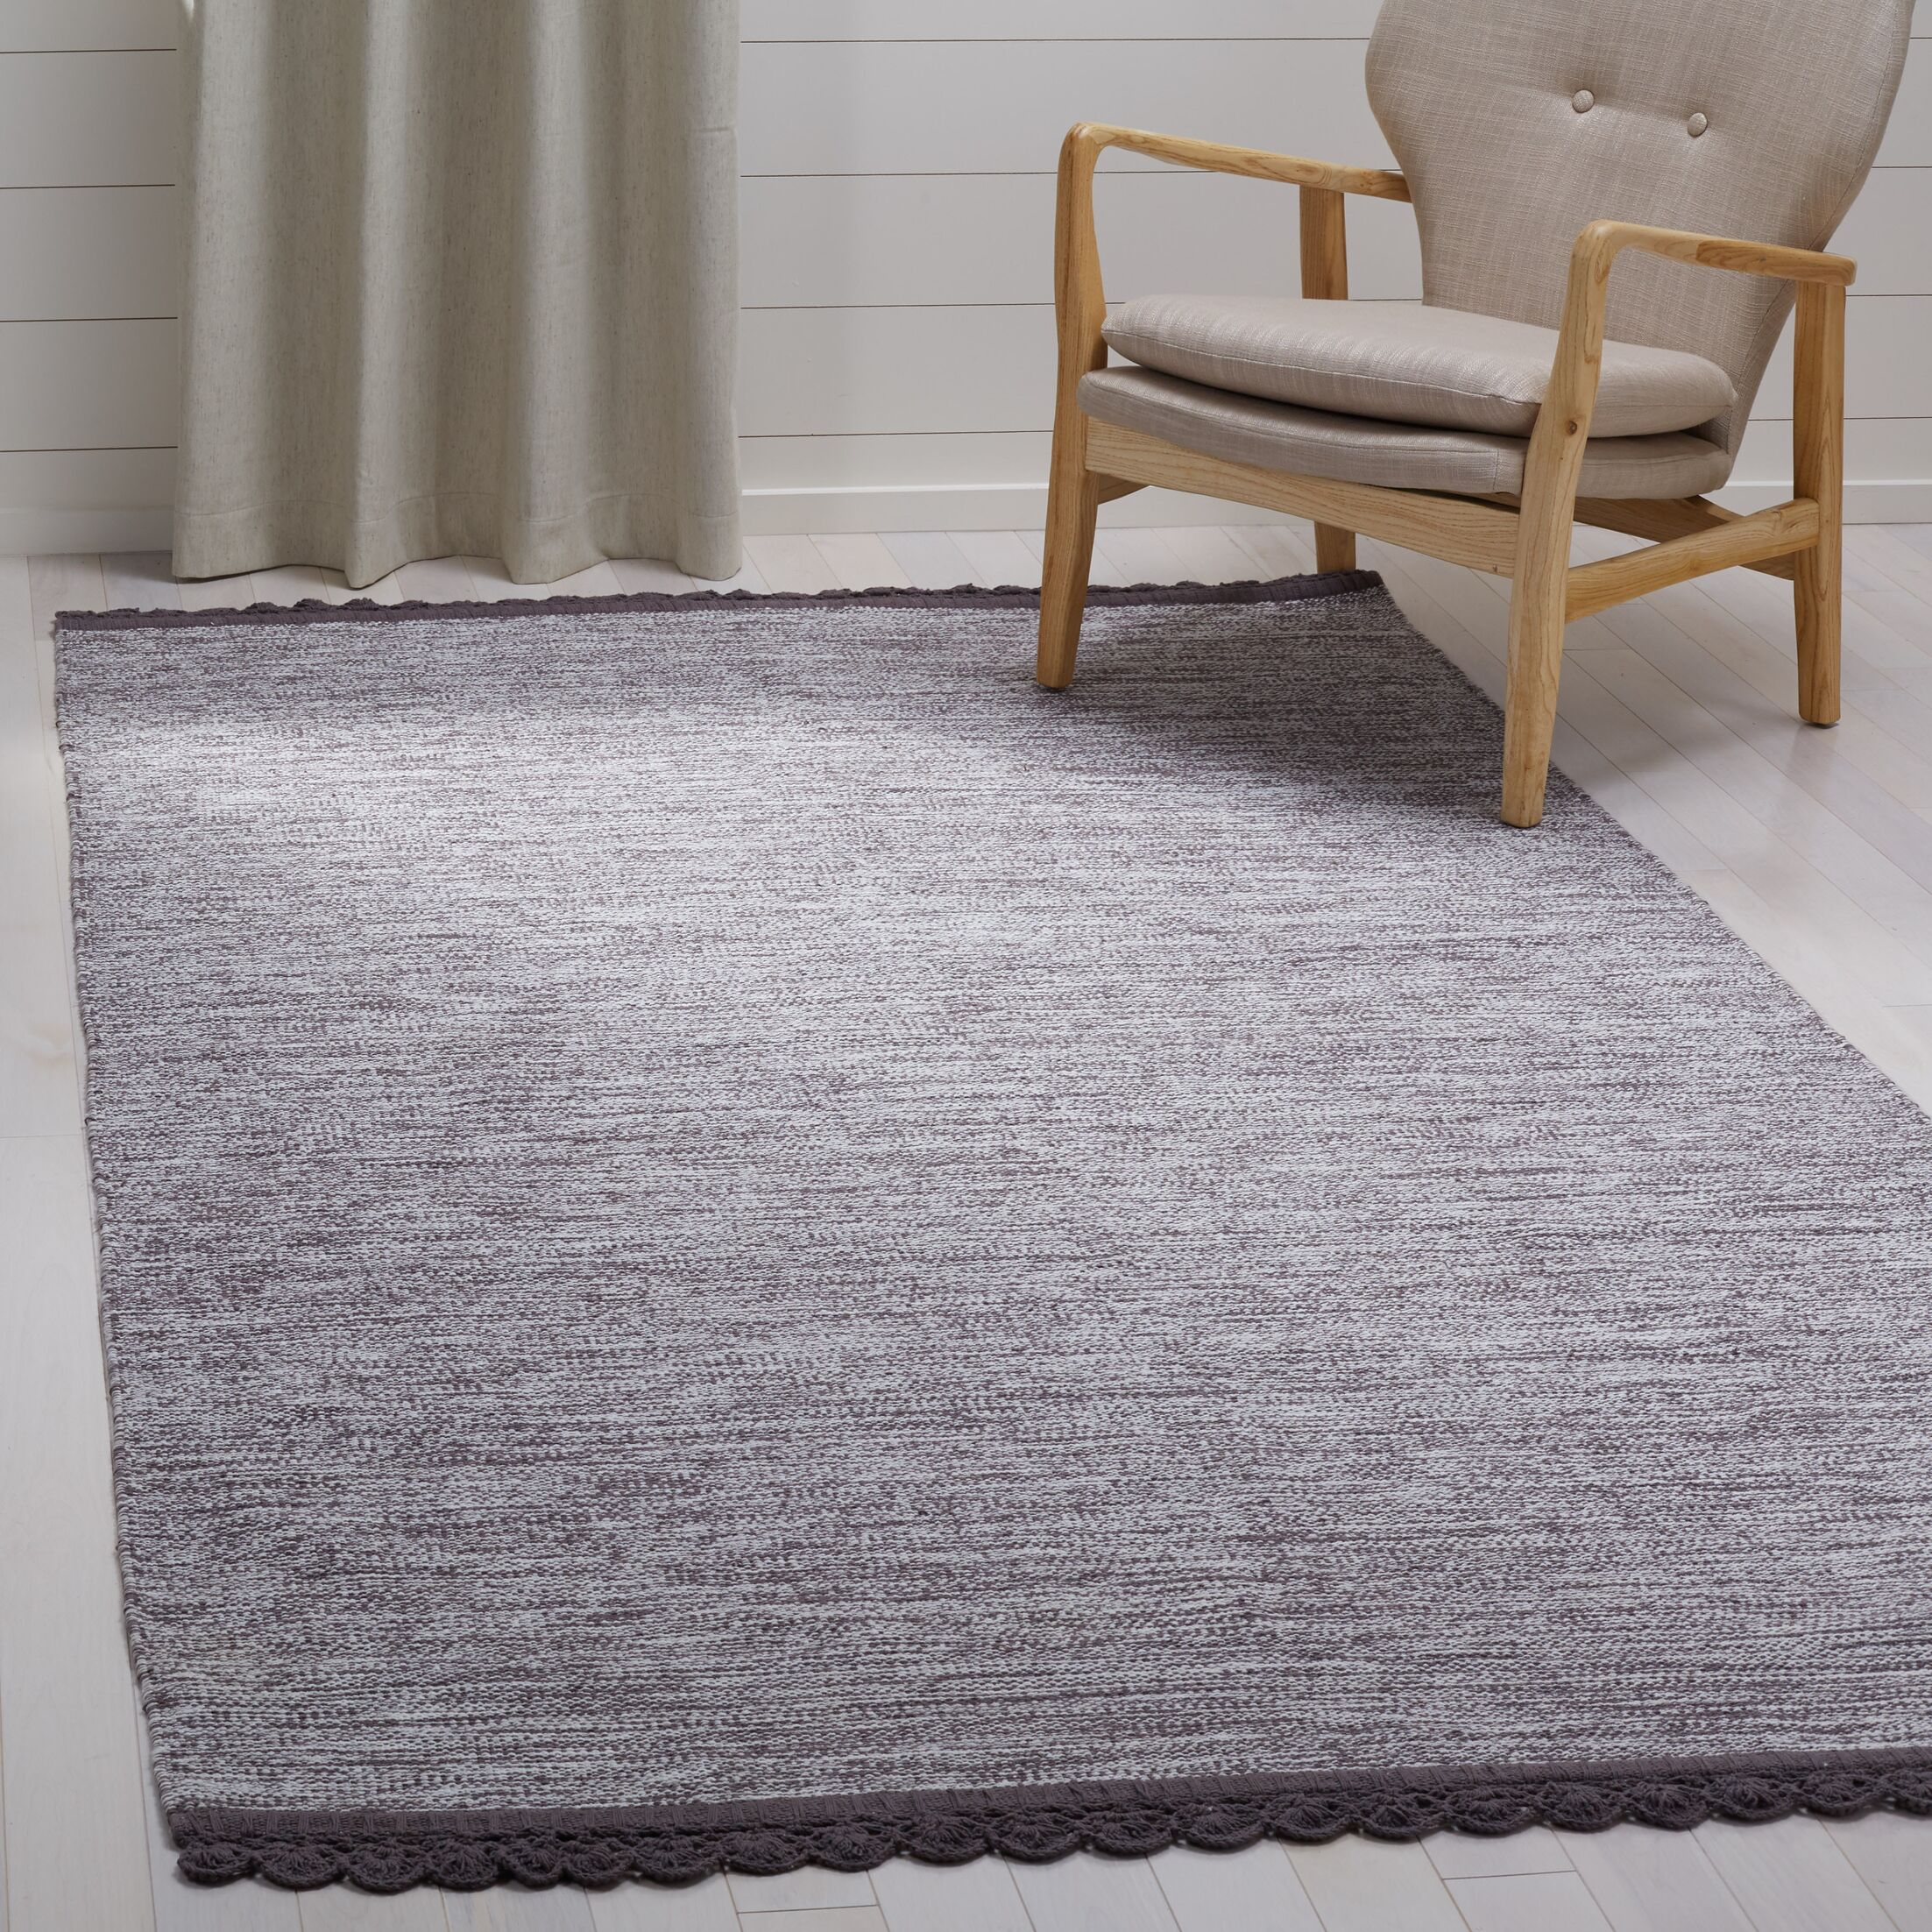 Mohnton Hand-Woven Charcoal Area Rug Rug Size: Rectangle 5' x 8'